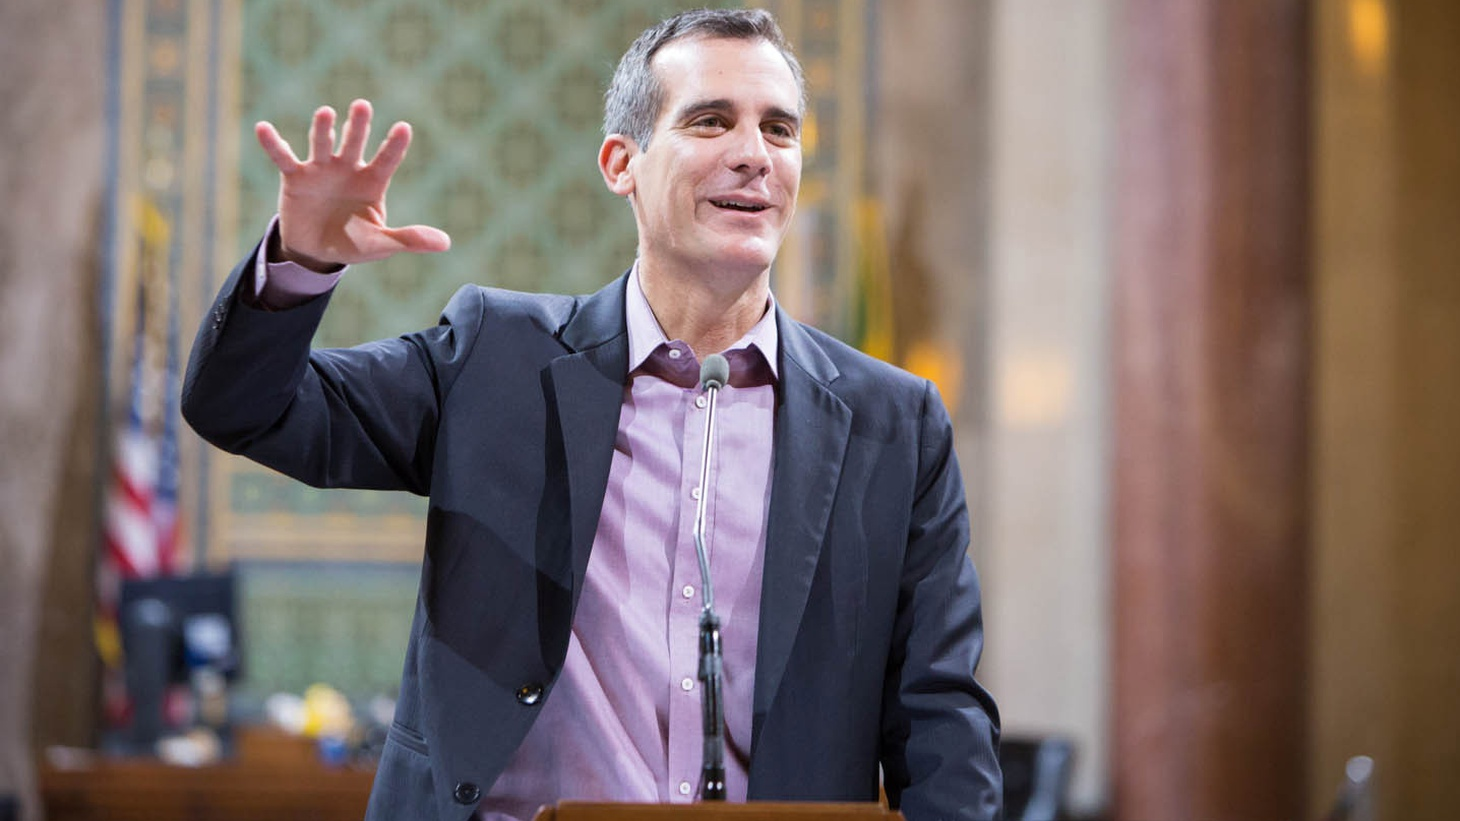 Mayor Eric Garcetti wants to raise the minimum wage in Los Angeles to $13.25 an hour. We'll ask him about small business predictions about lost jobs. Also: Does LA need a Housing Czar? Does Garcetti really like being Mayor of a city that can't pave its streets or fix its broken sidewalks?